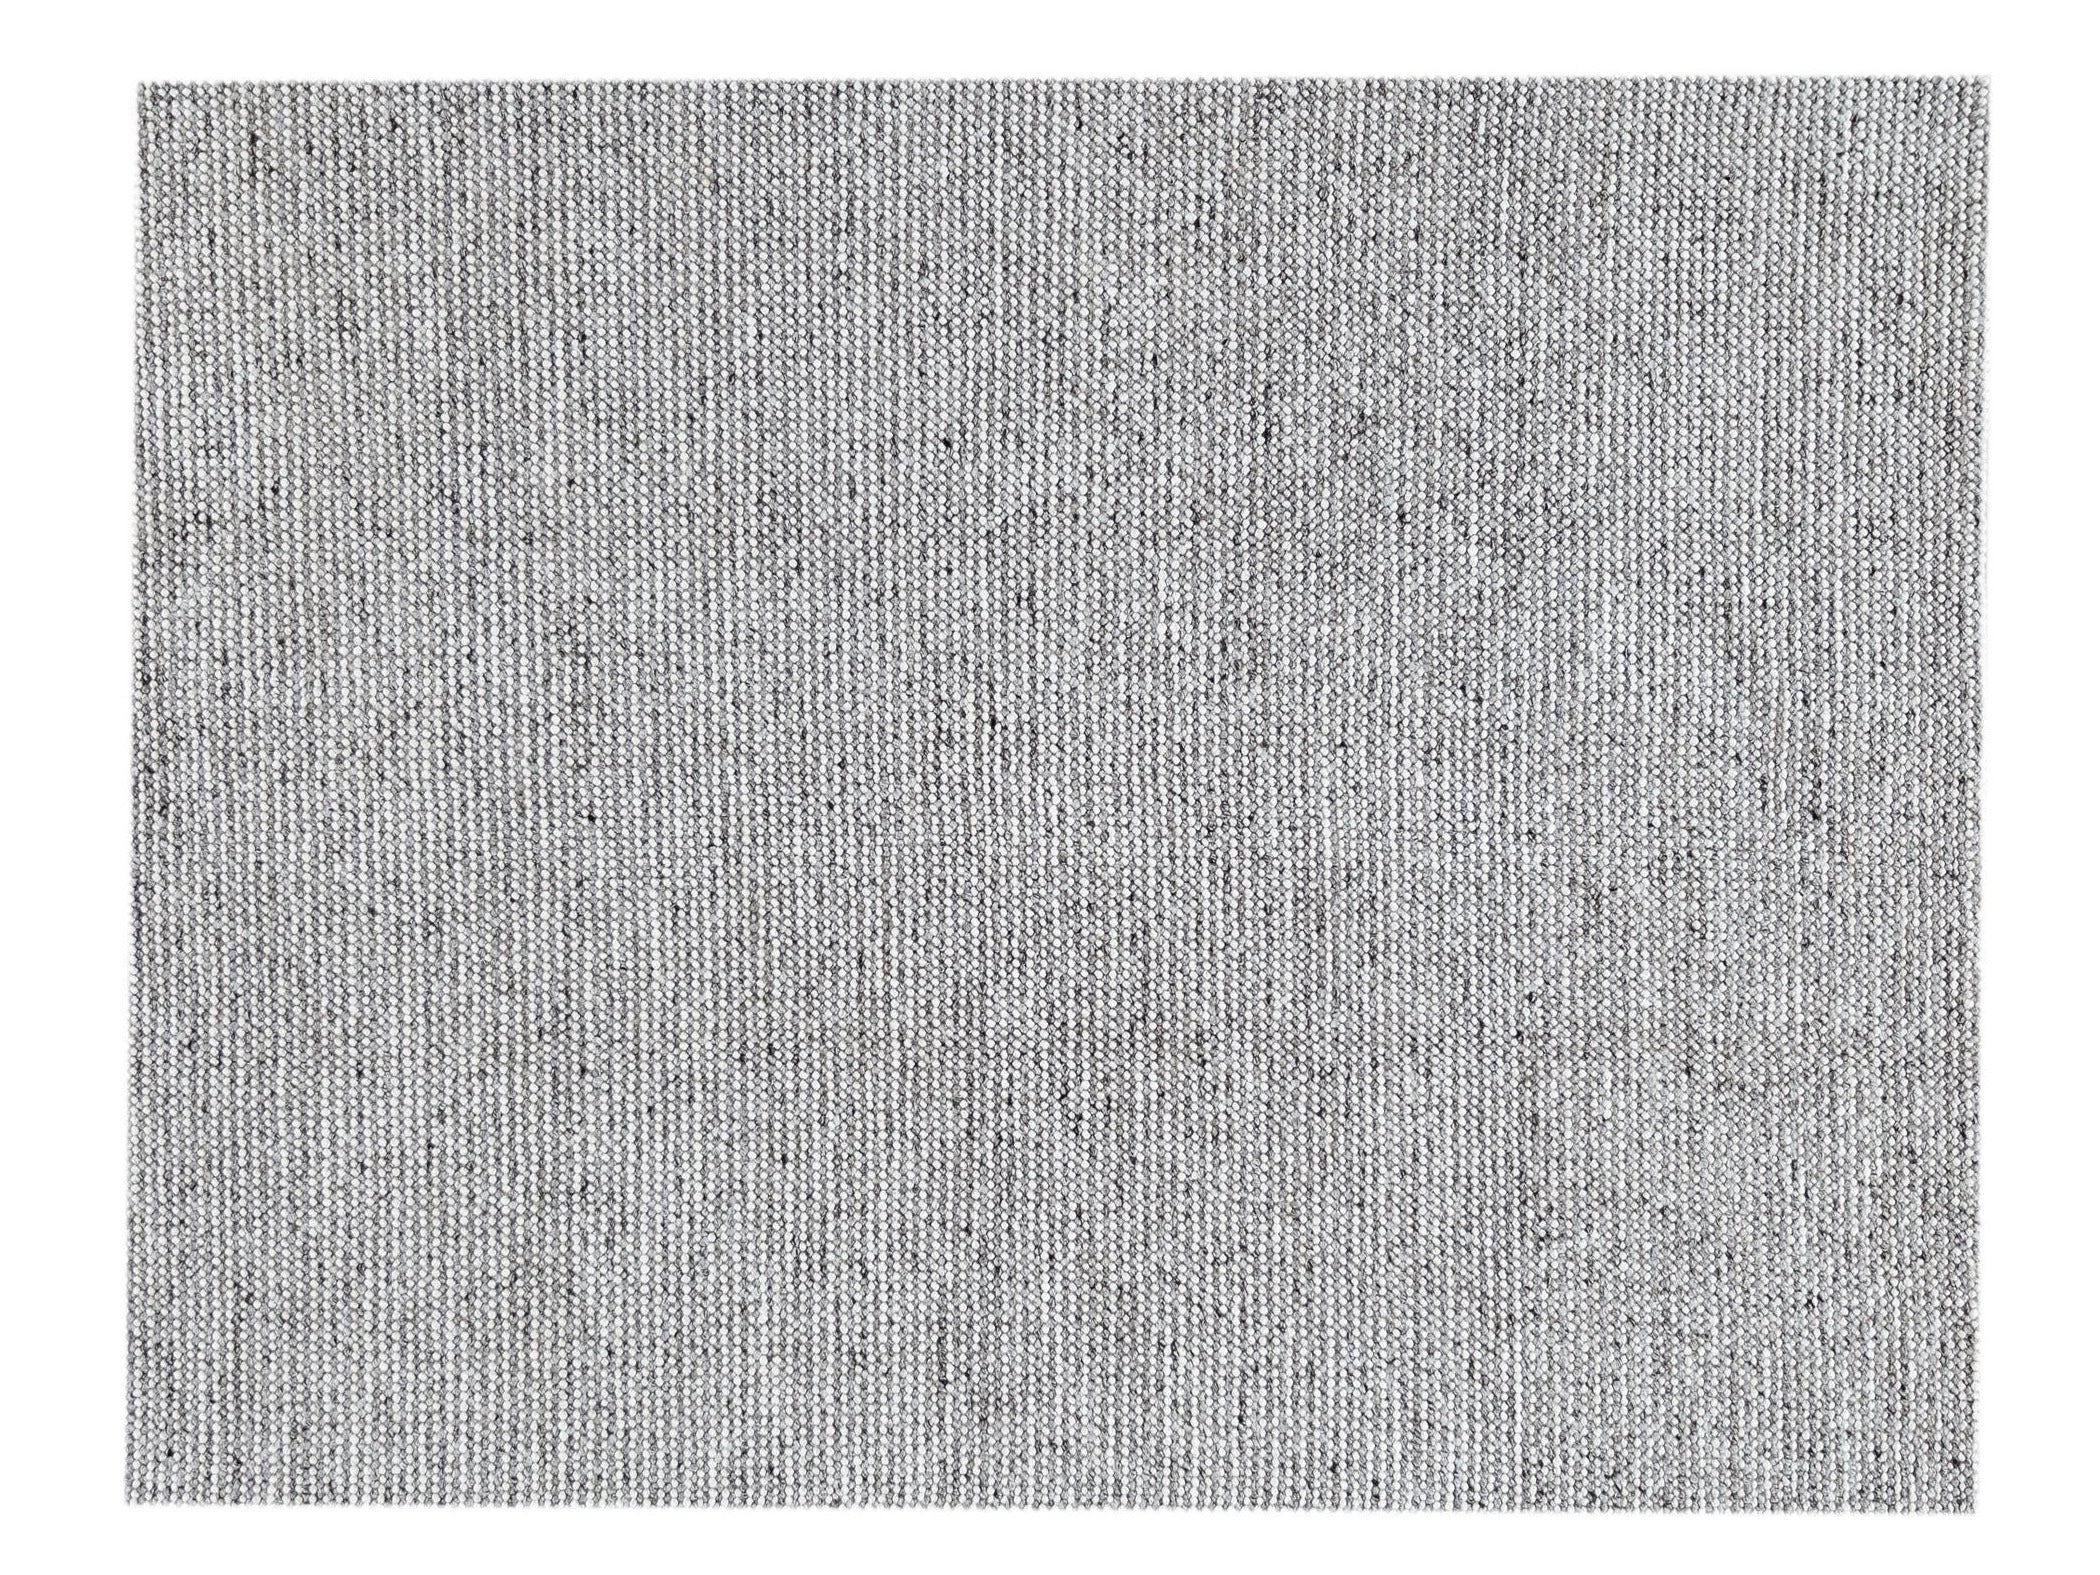 Contemporary Handwoven Texture Wool Rug, 8' x 10'